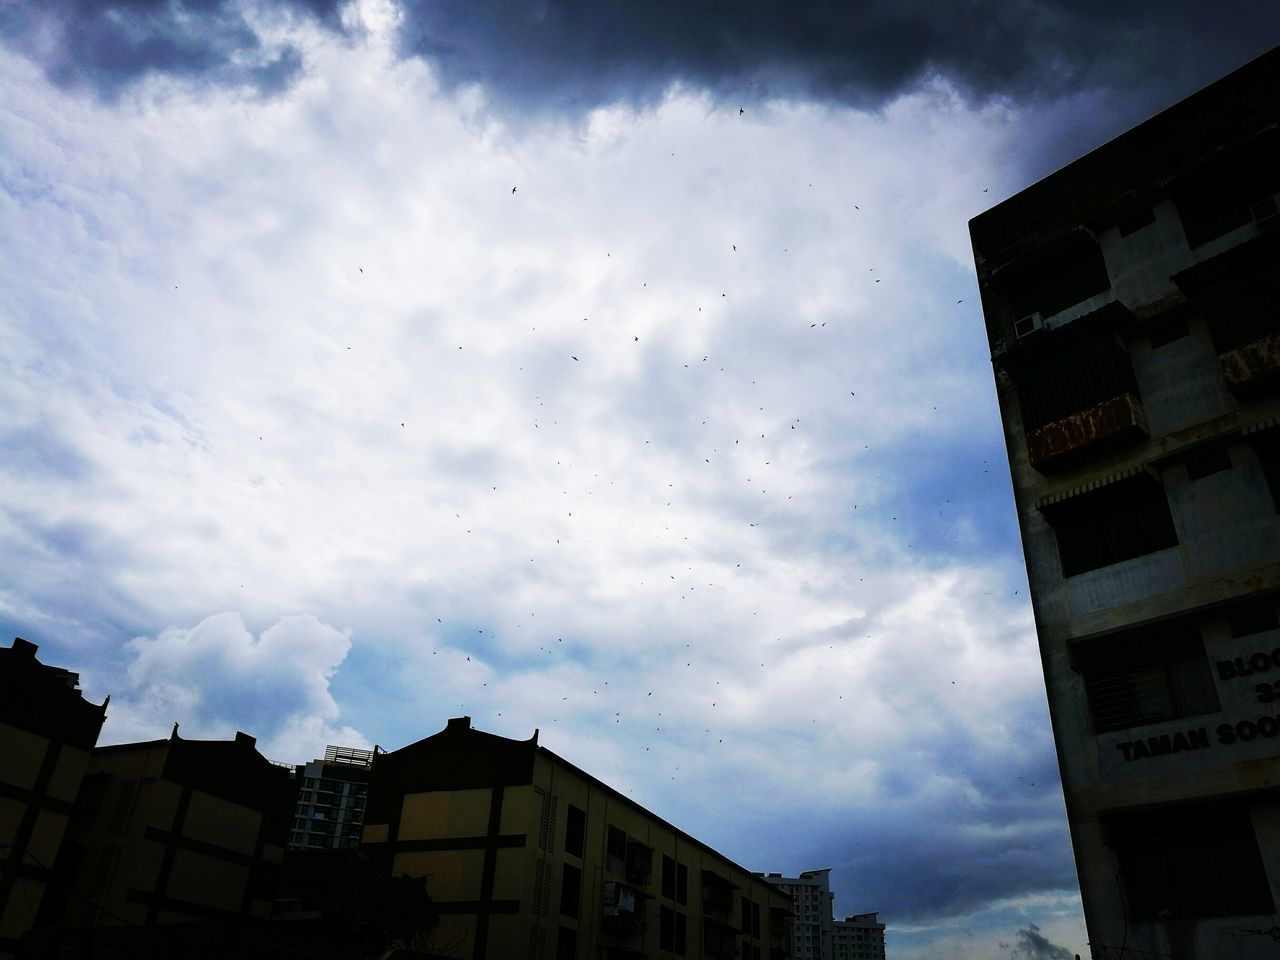 sky, cloud - sky, low angle view, building exterior, architecture, built structure, no people, outdoors, day, city